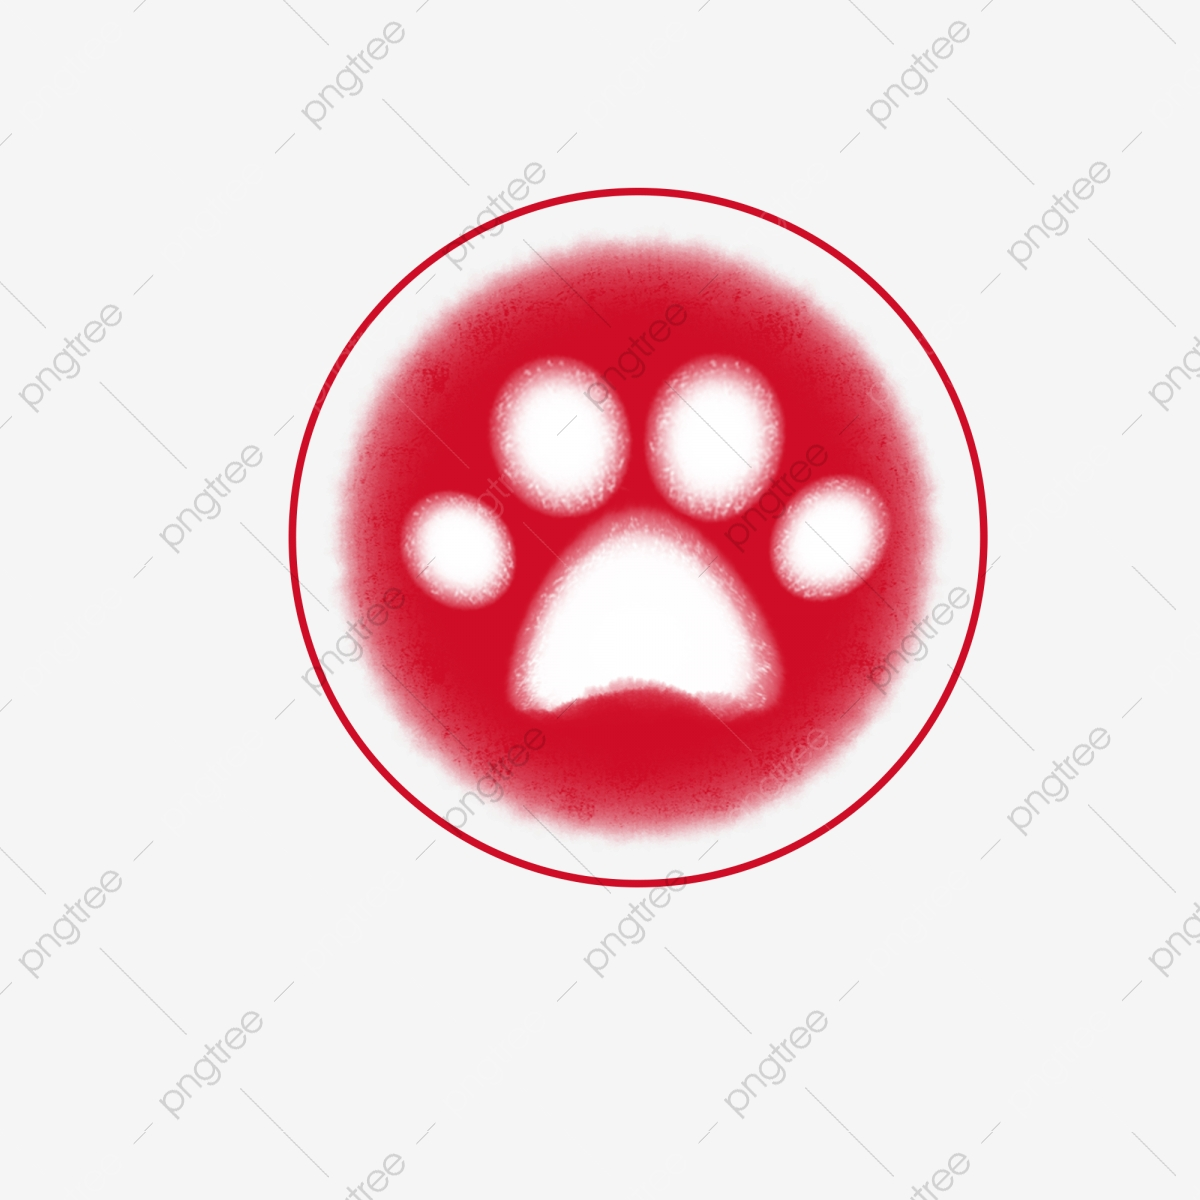 Paw Prints Png Images Vector And Psd Files Free Download On Pngtree In this gallery postage stamp we have 87 free png images with transparent background. https pngtree com freepng bear paw prints 3022830 html